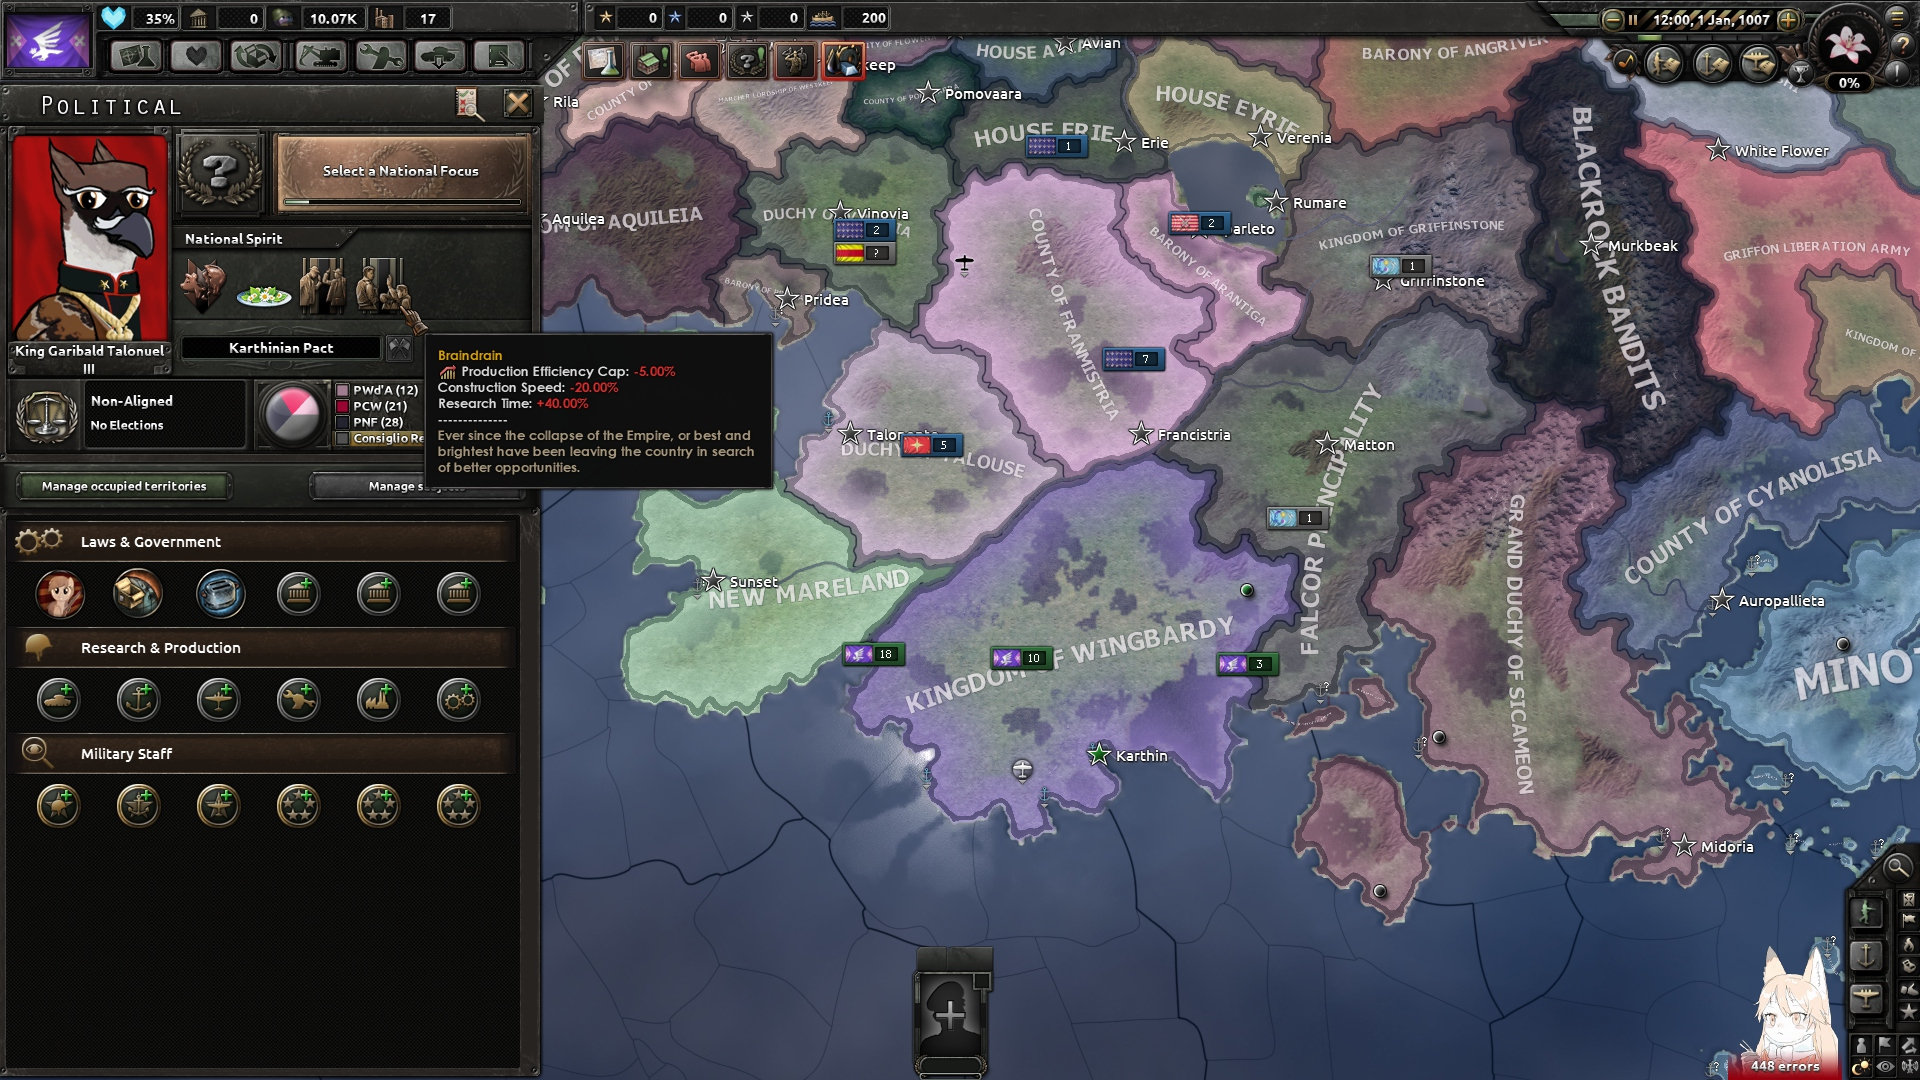 Equestria At War Dev Diary I: The New Continent : hoi4